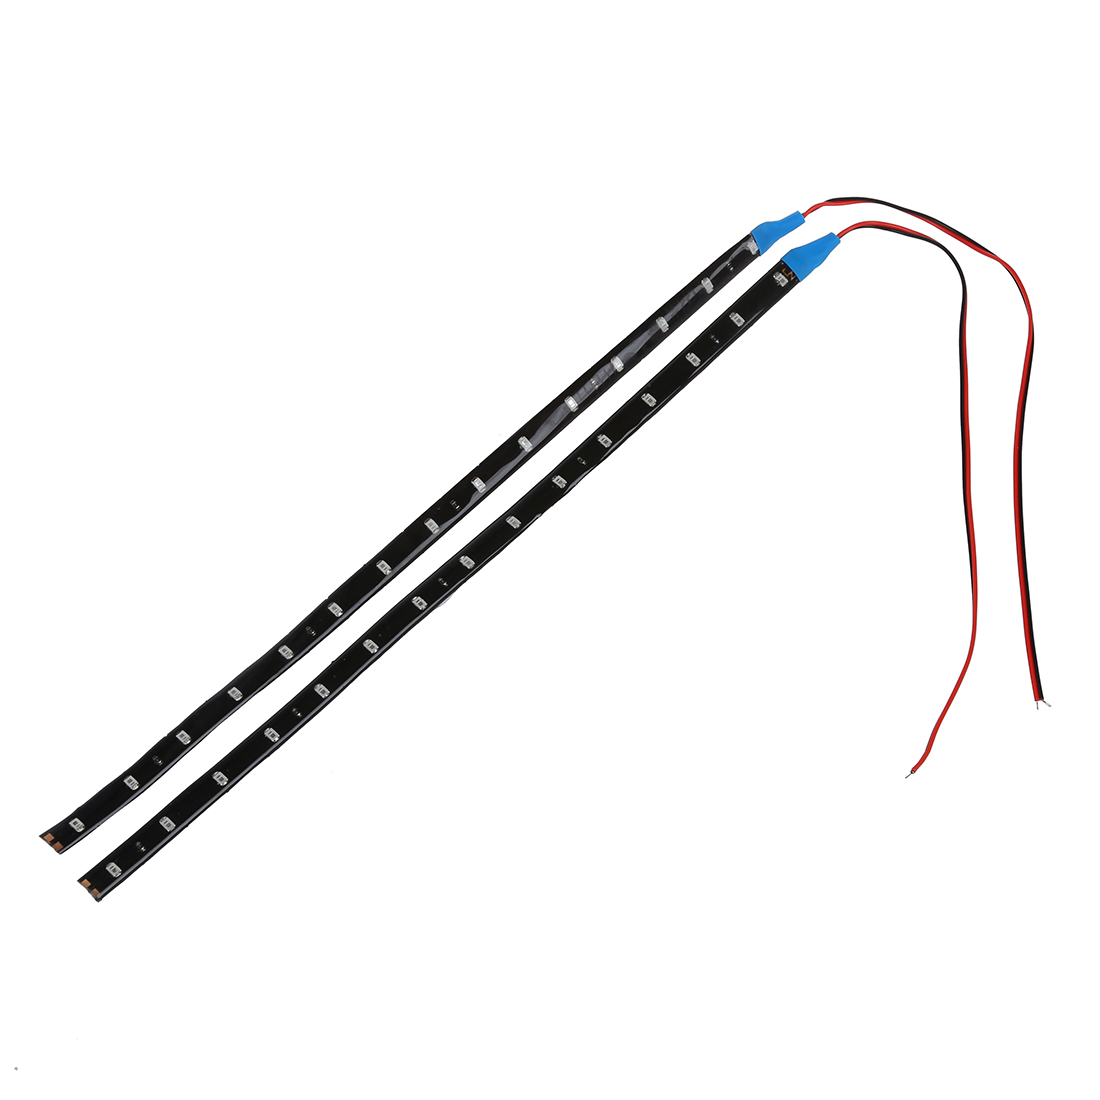 Brand New 2pcs 30CM 15SMD Car Strip Under Light Neon Footwell Flexible Waterproof - Blue